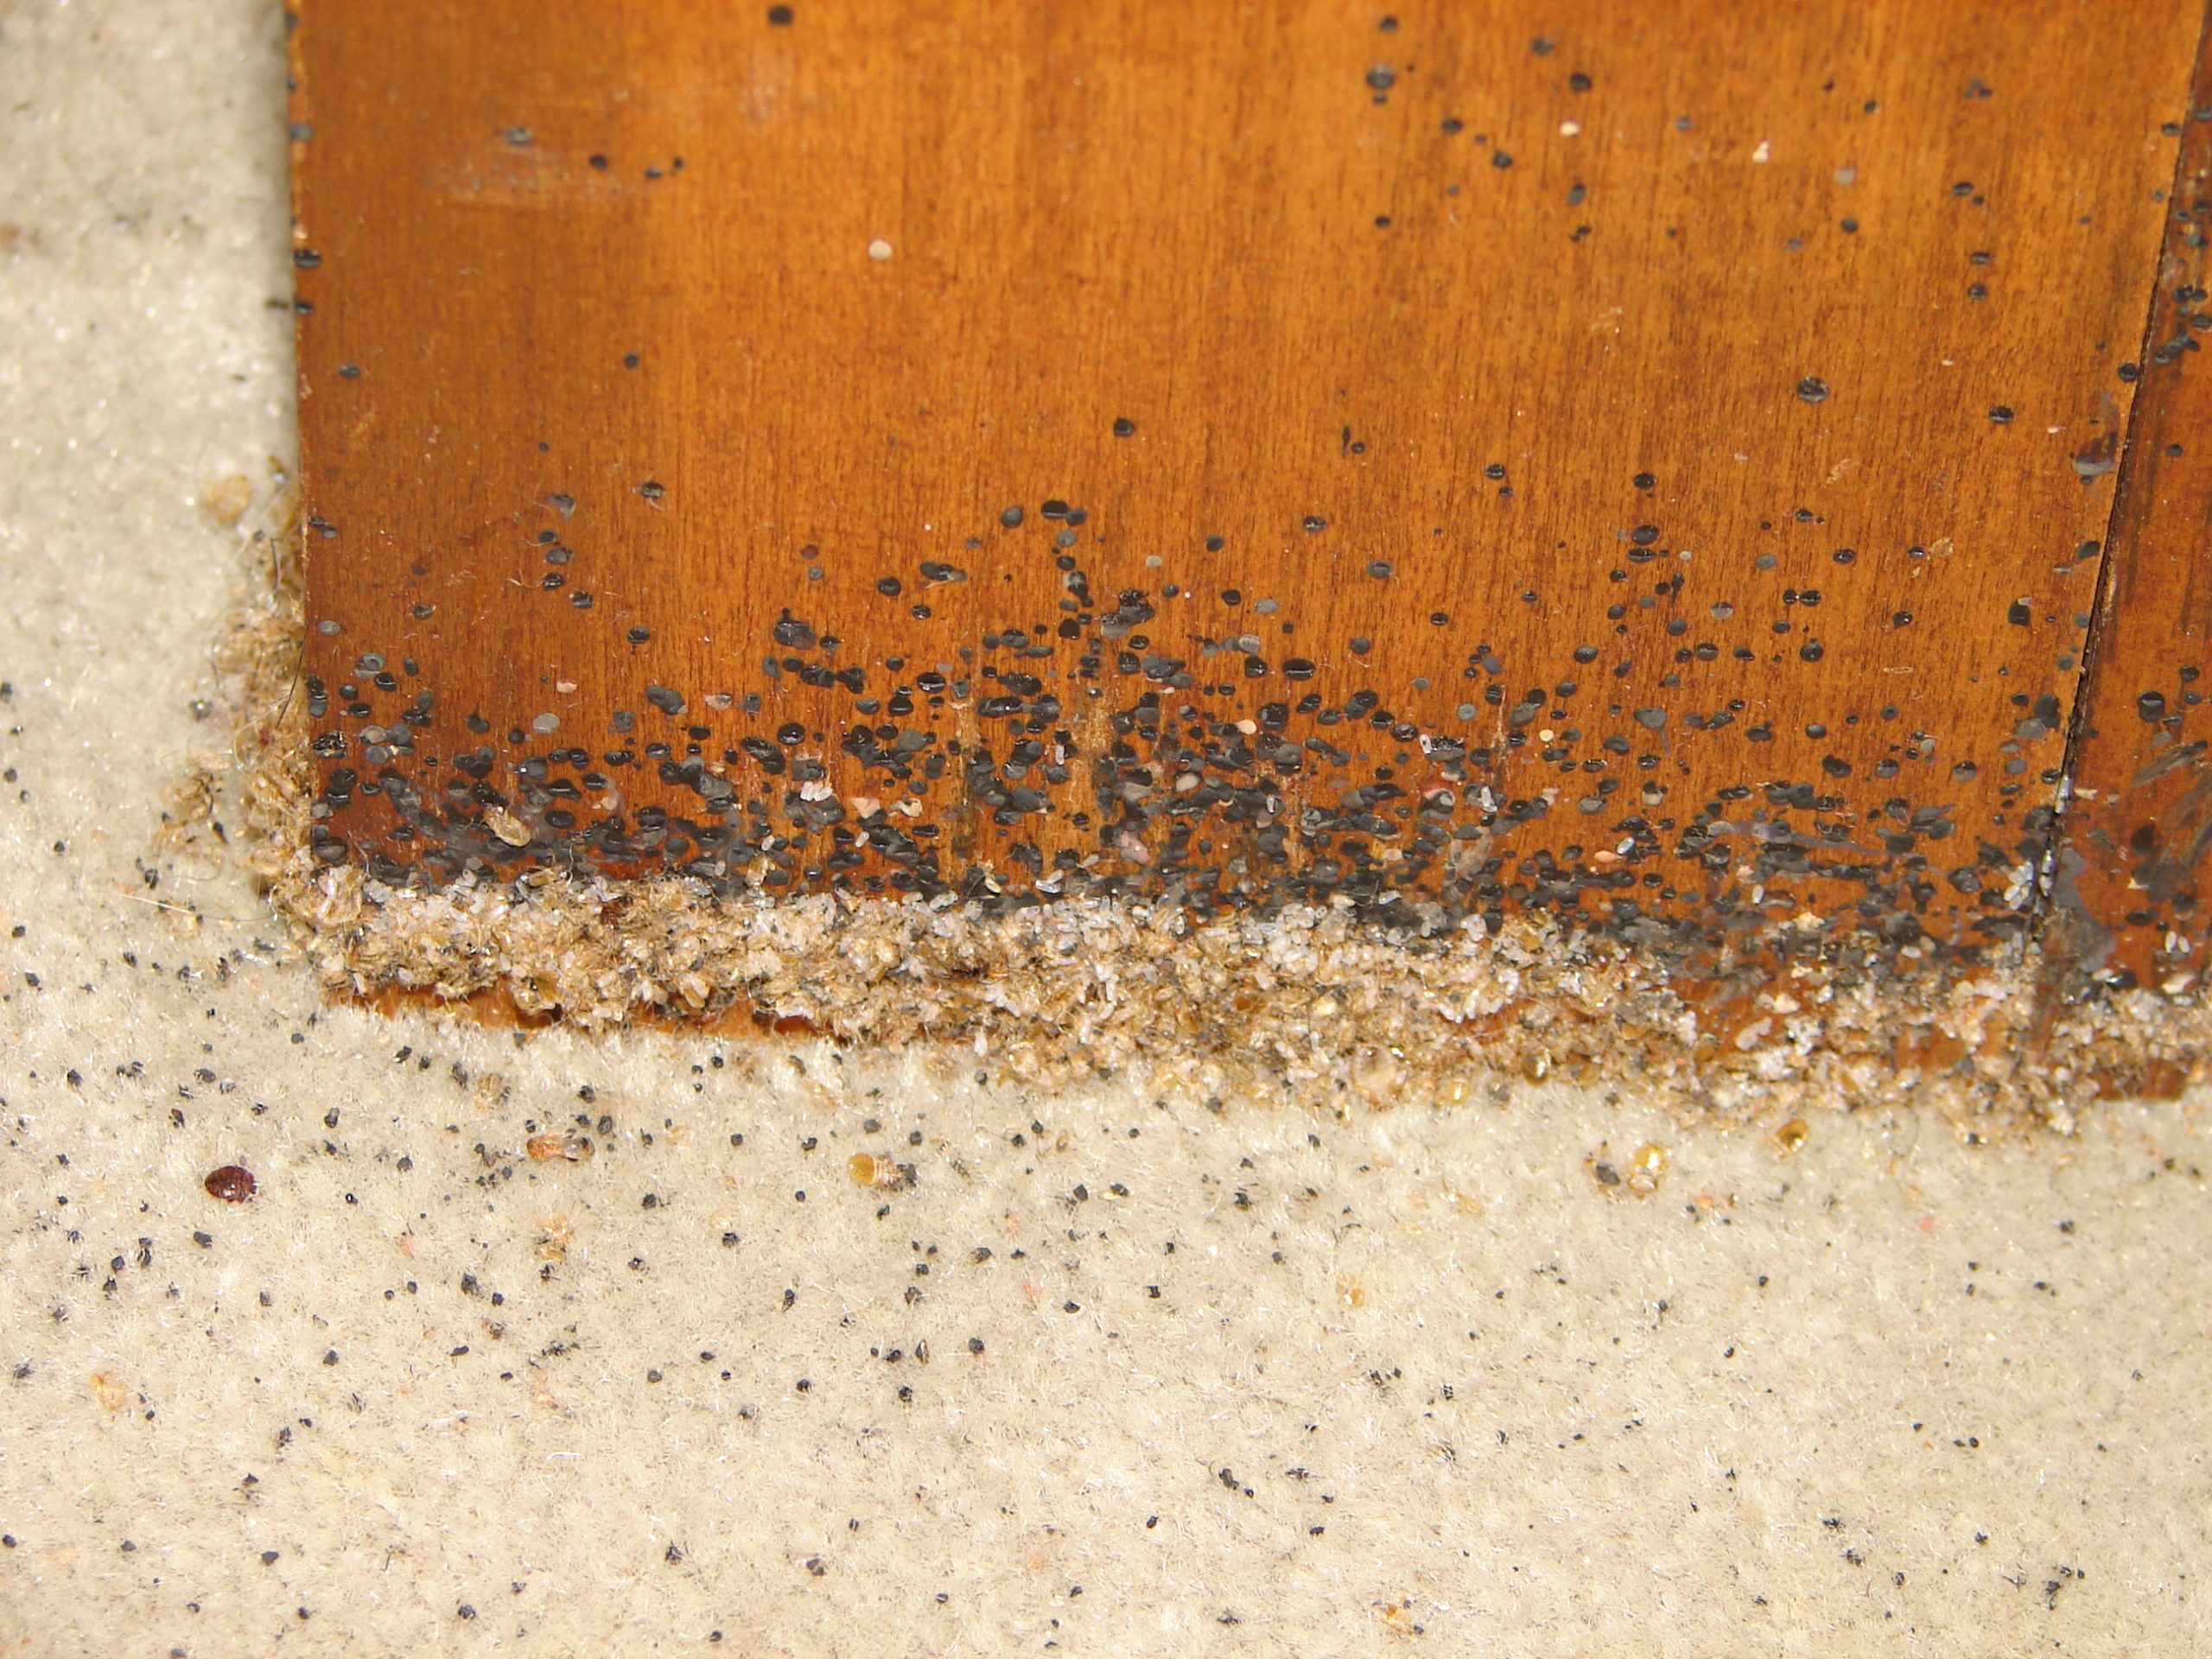 How to Prevent Bed Bugs From Entering Wood Floor